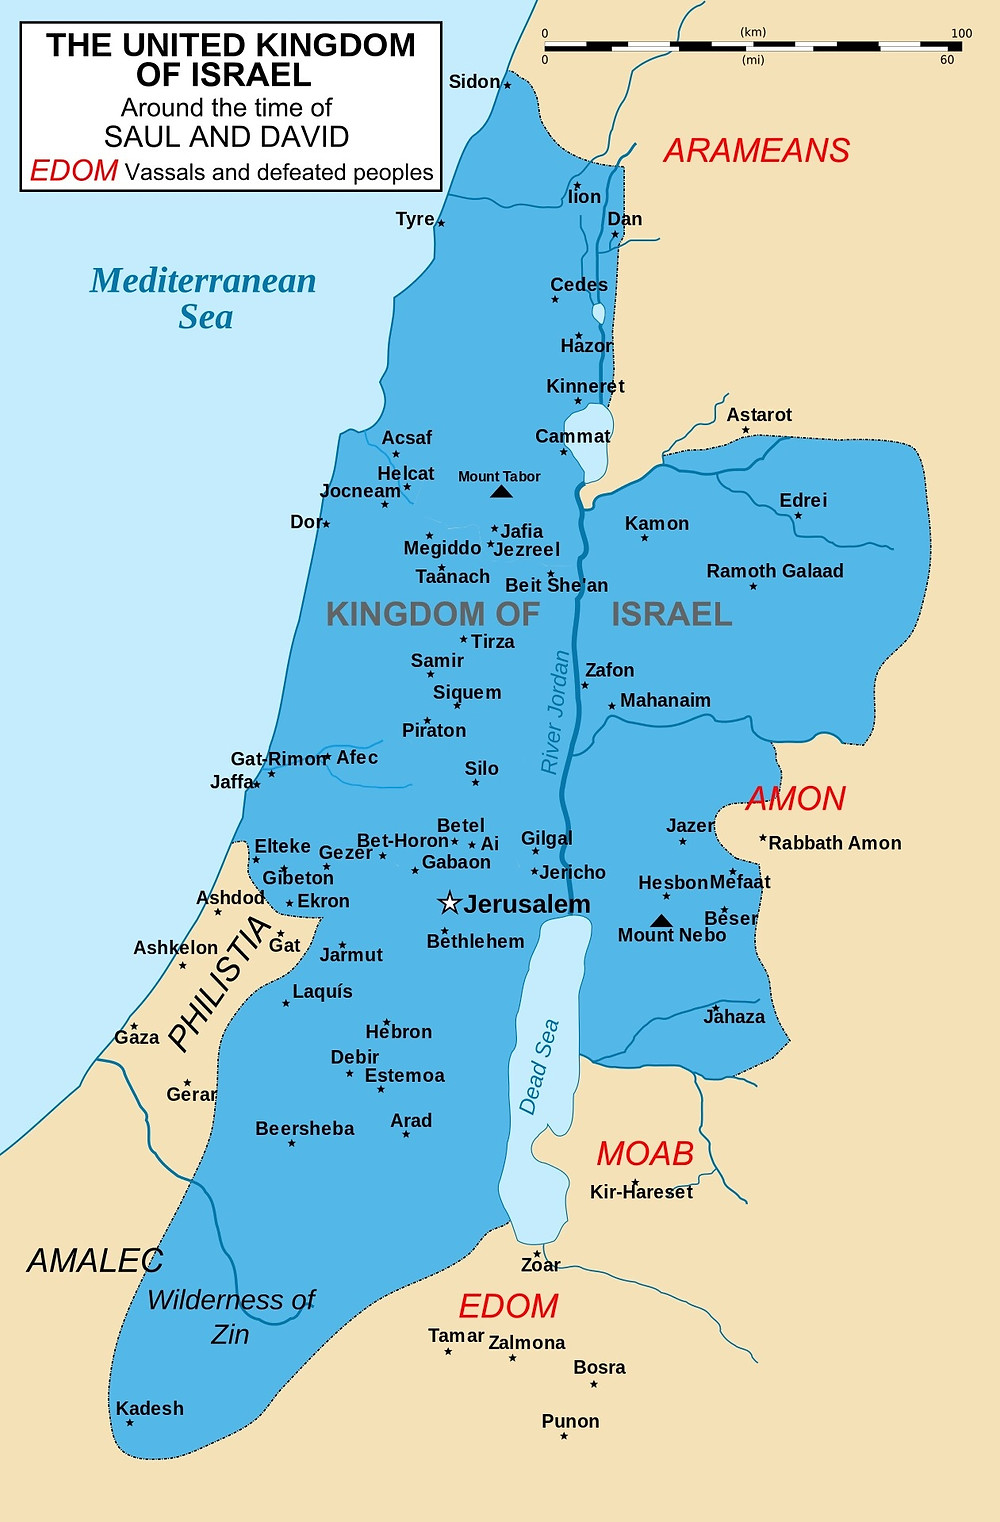 Map of the United Kingdom of Israel